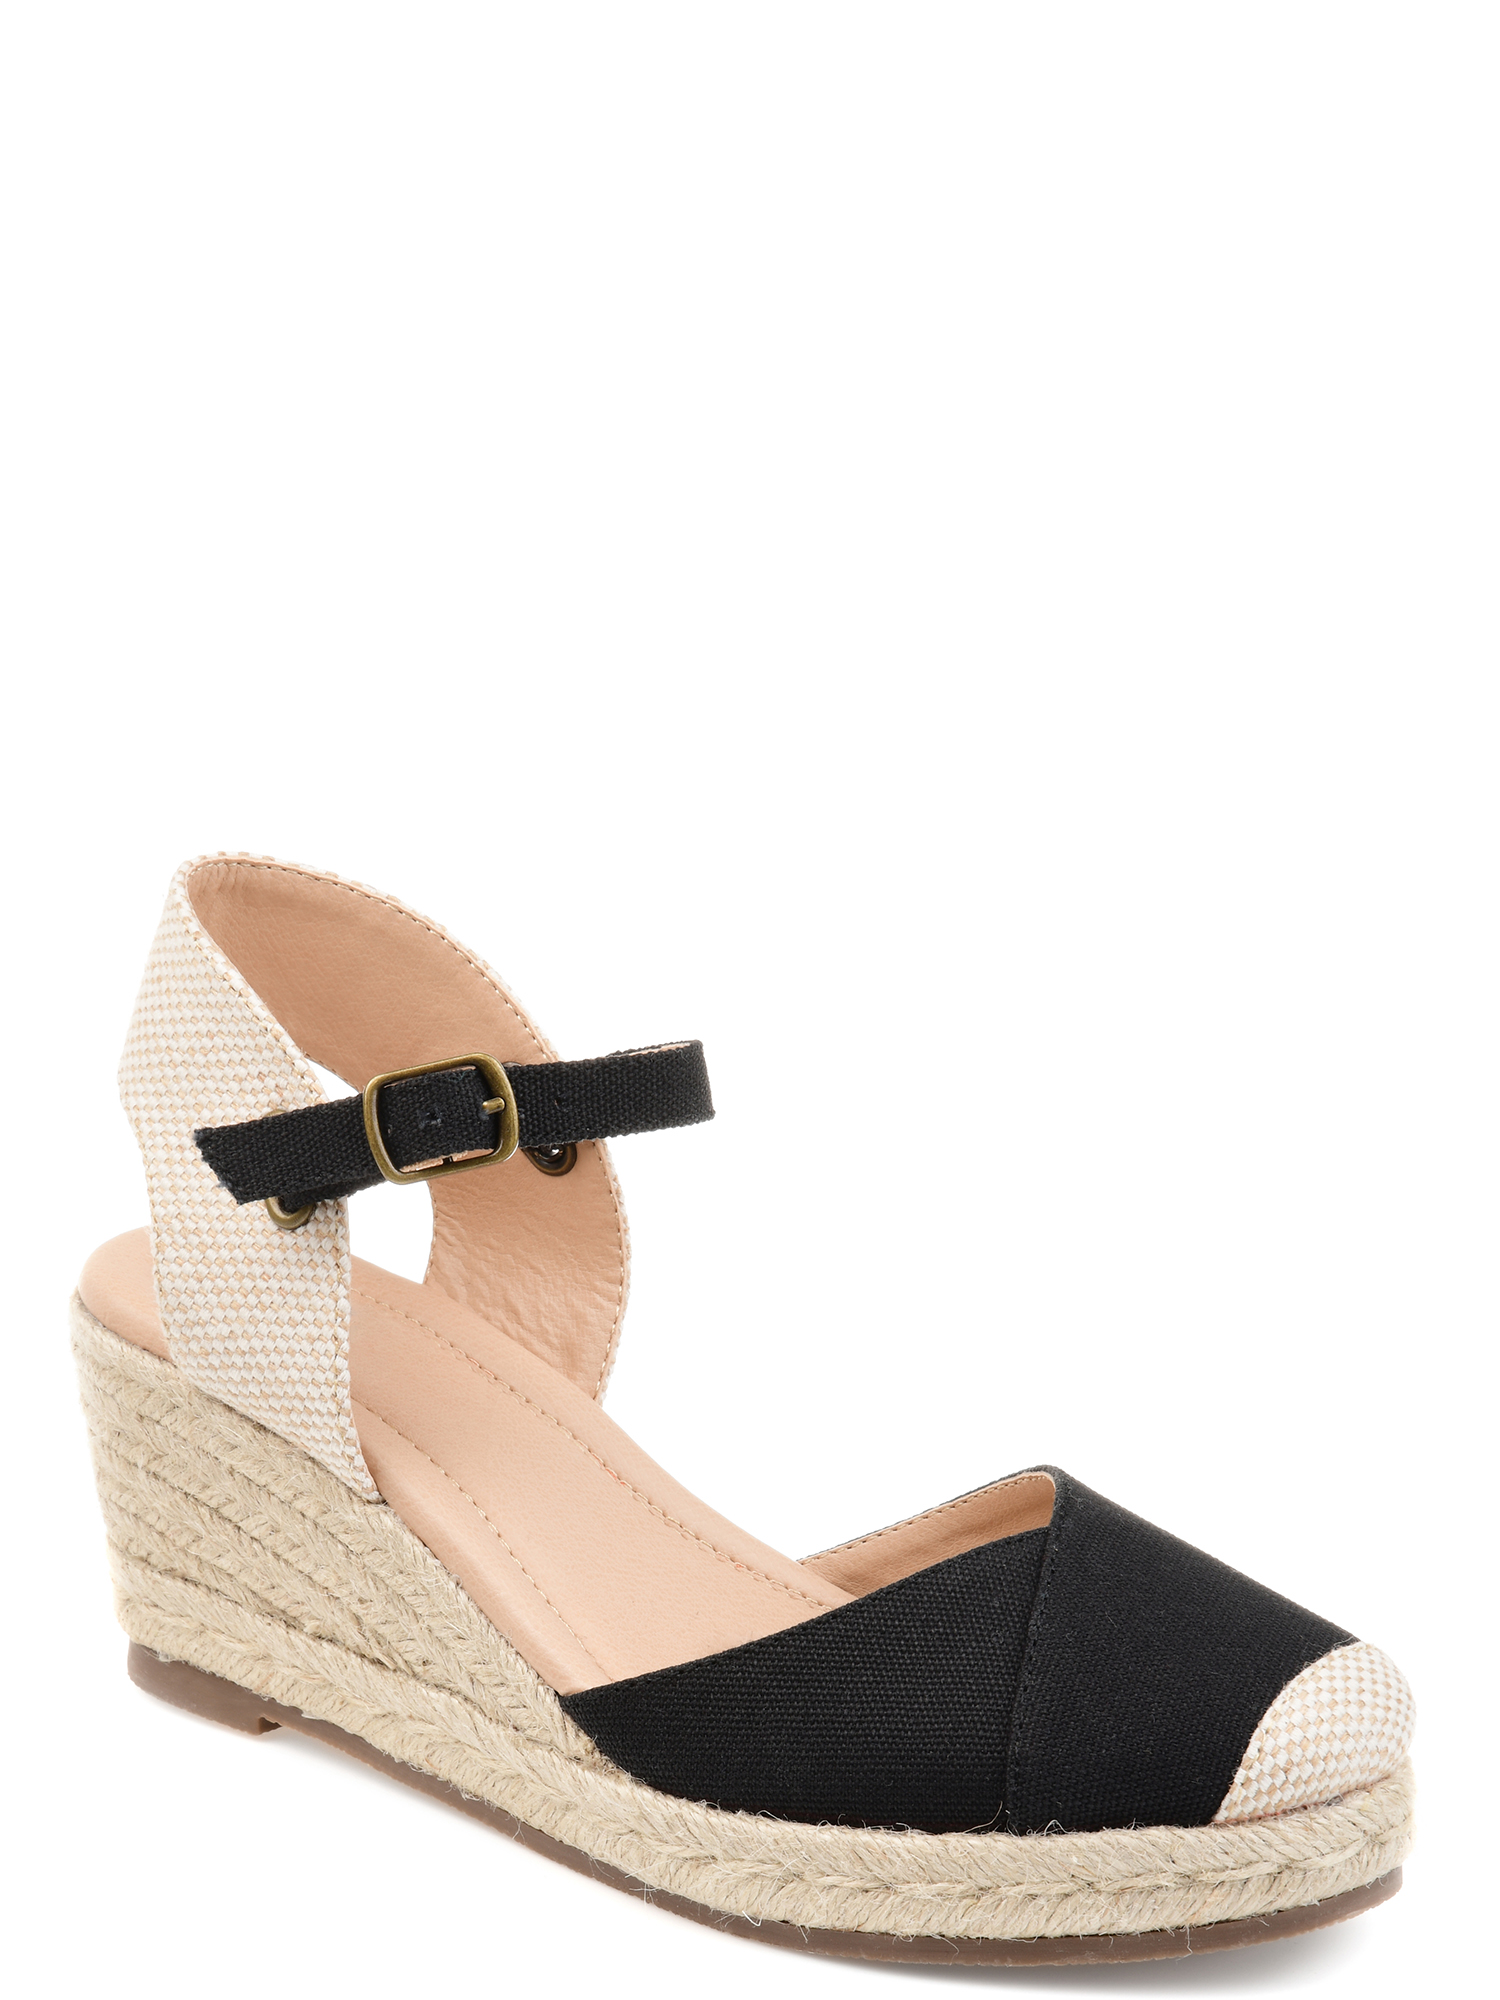 Brinley Co. Comfort Womens Espadrille Ankle-strap Wedge